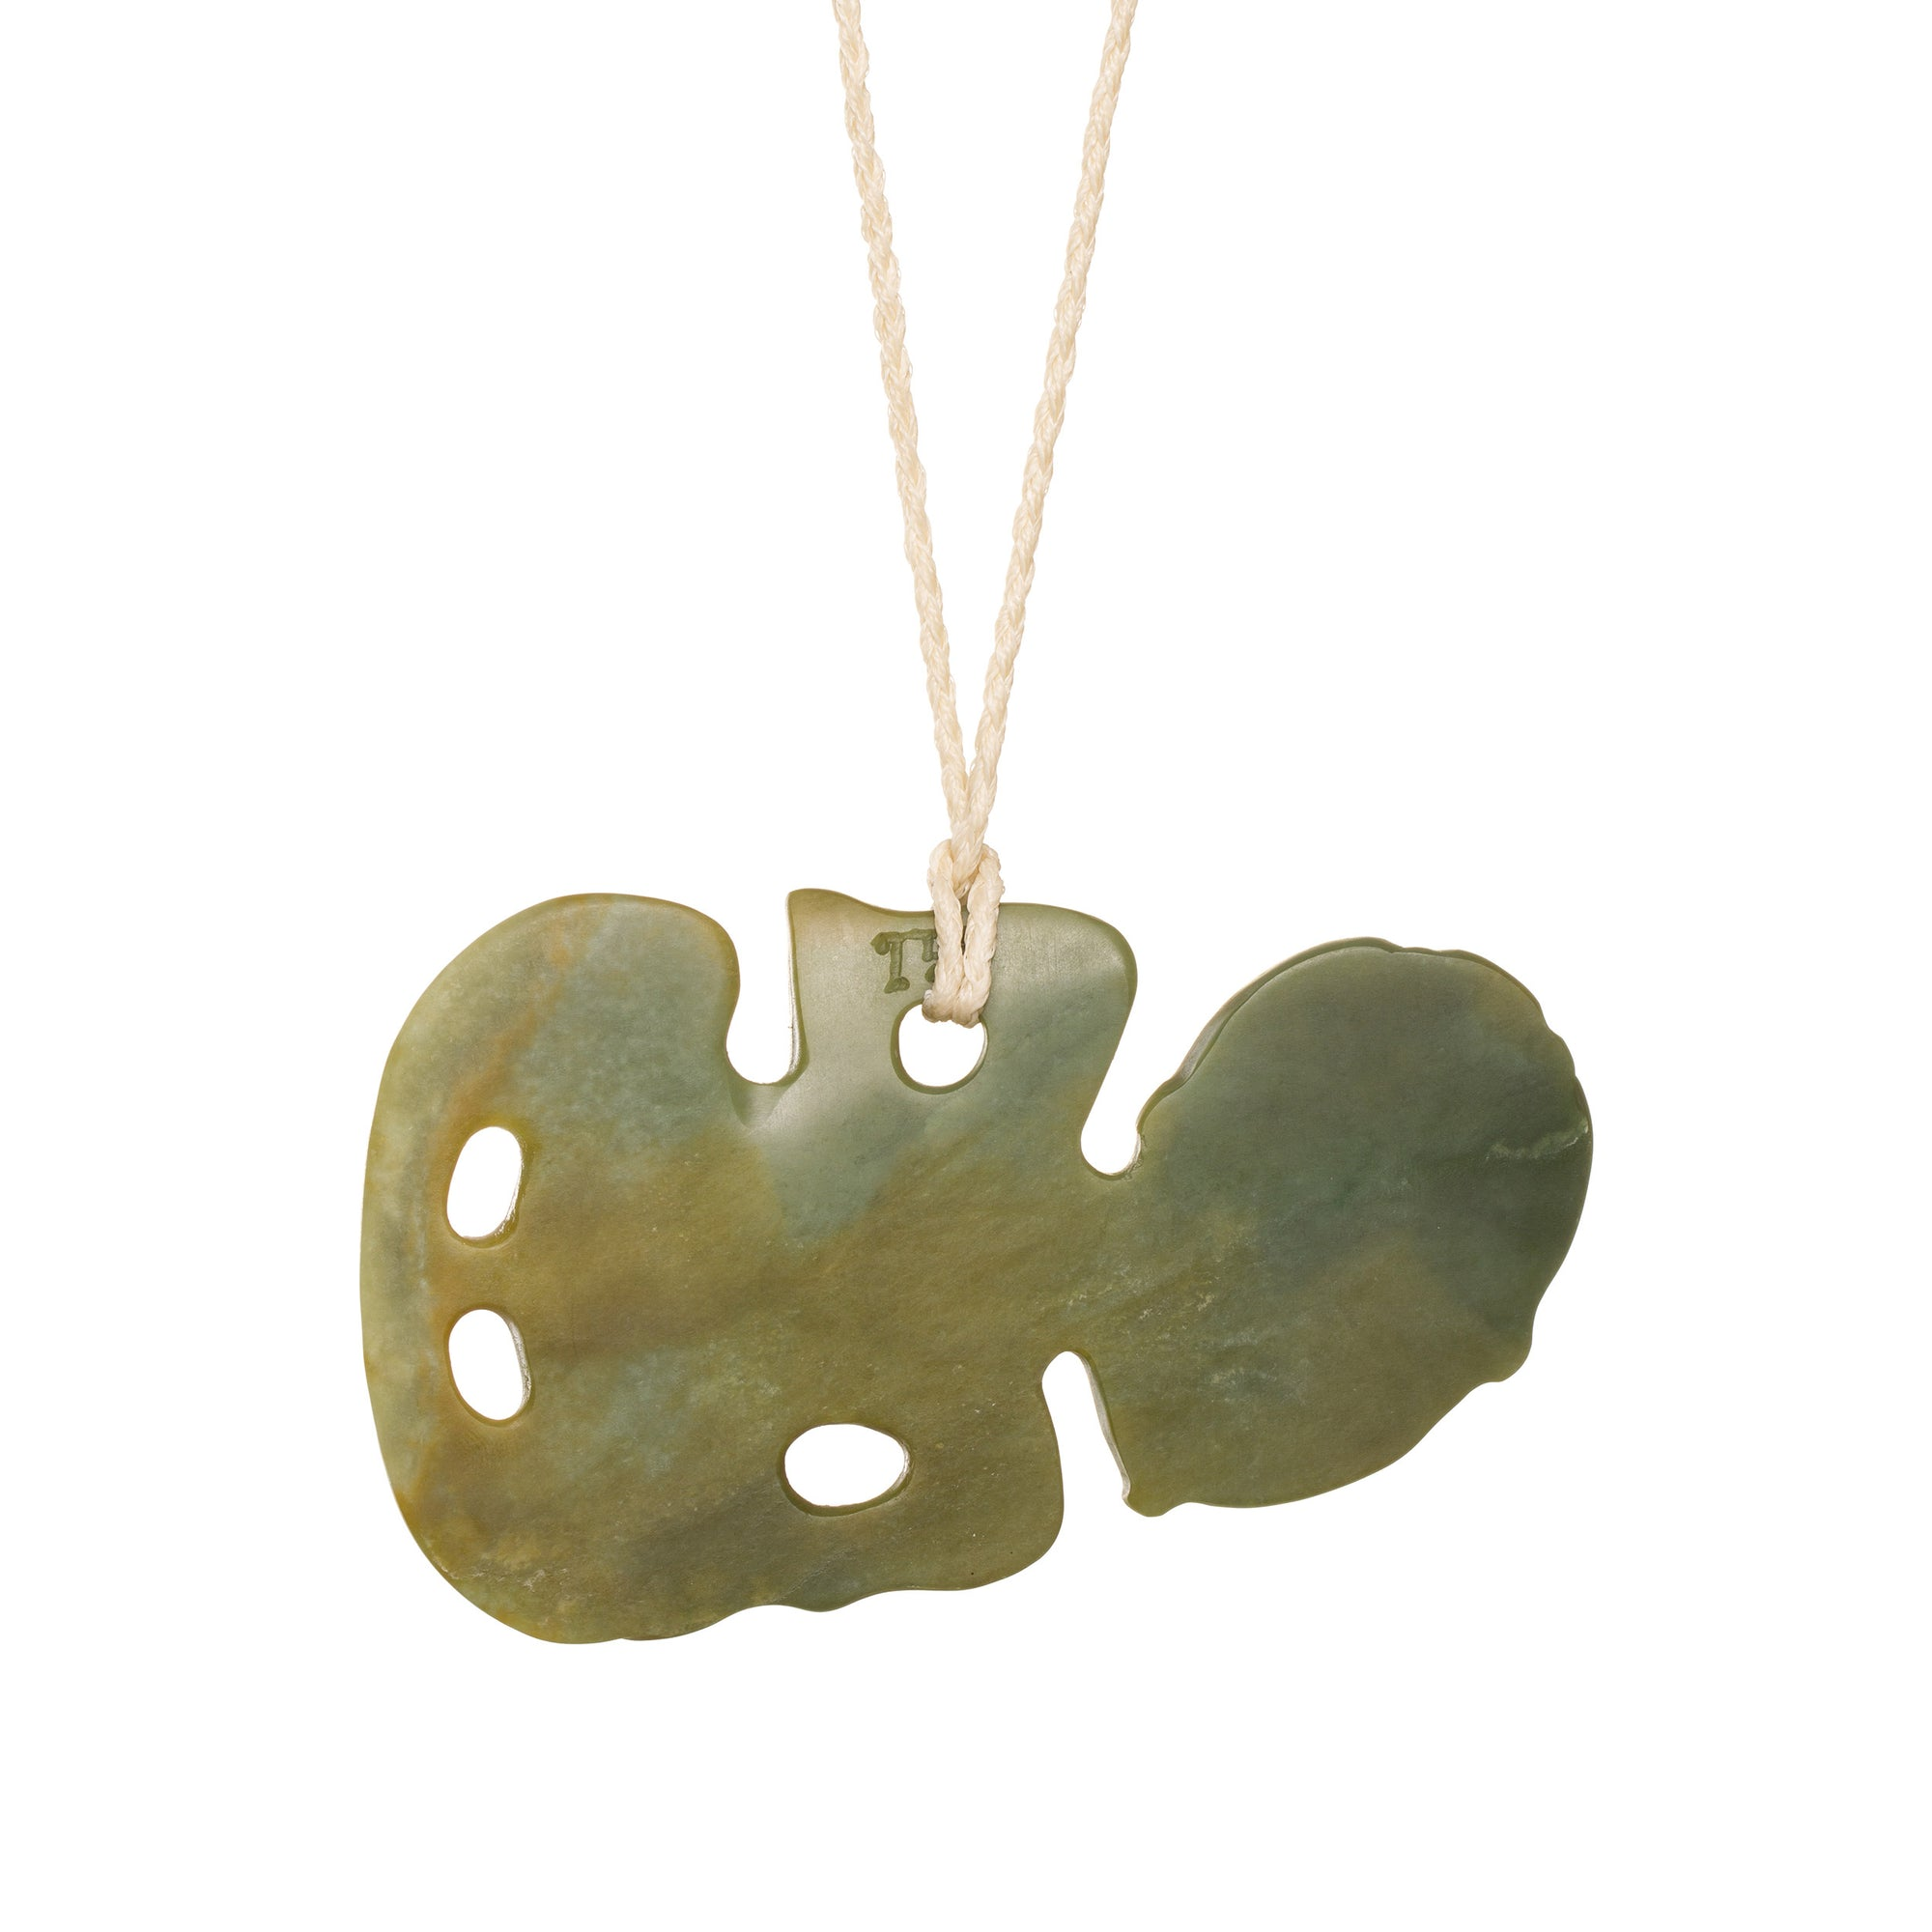 New Zealand Pounamu Large Hei Tiki Necklace